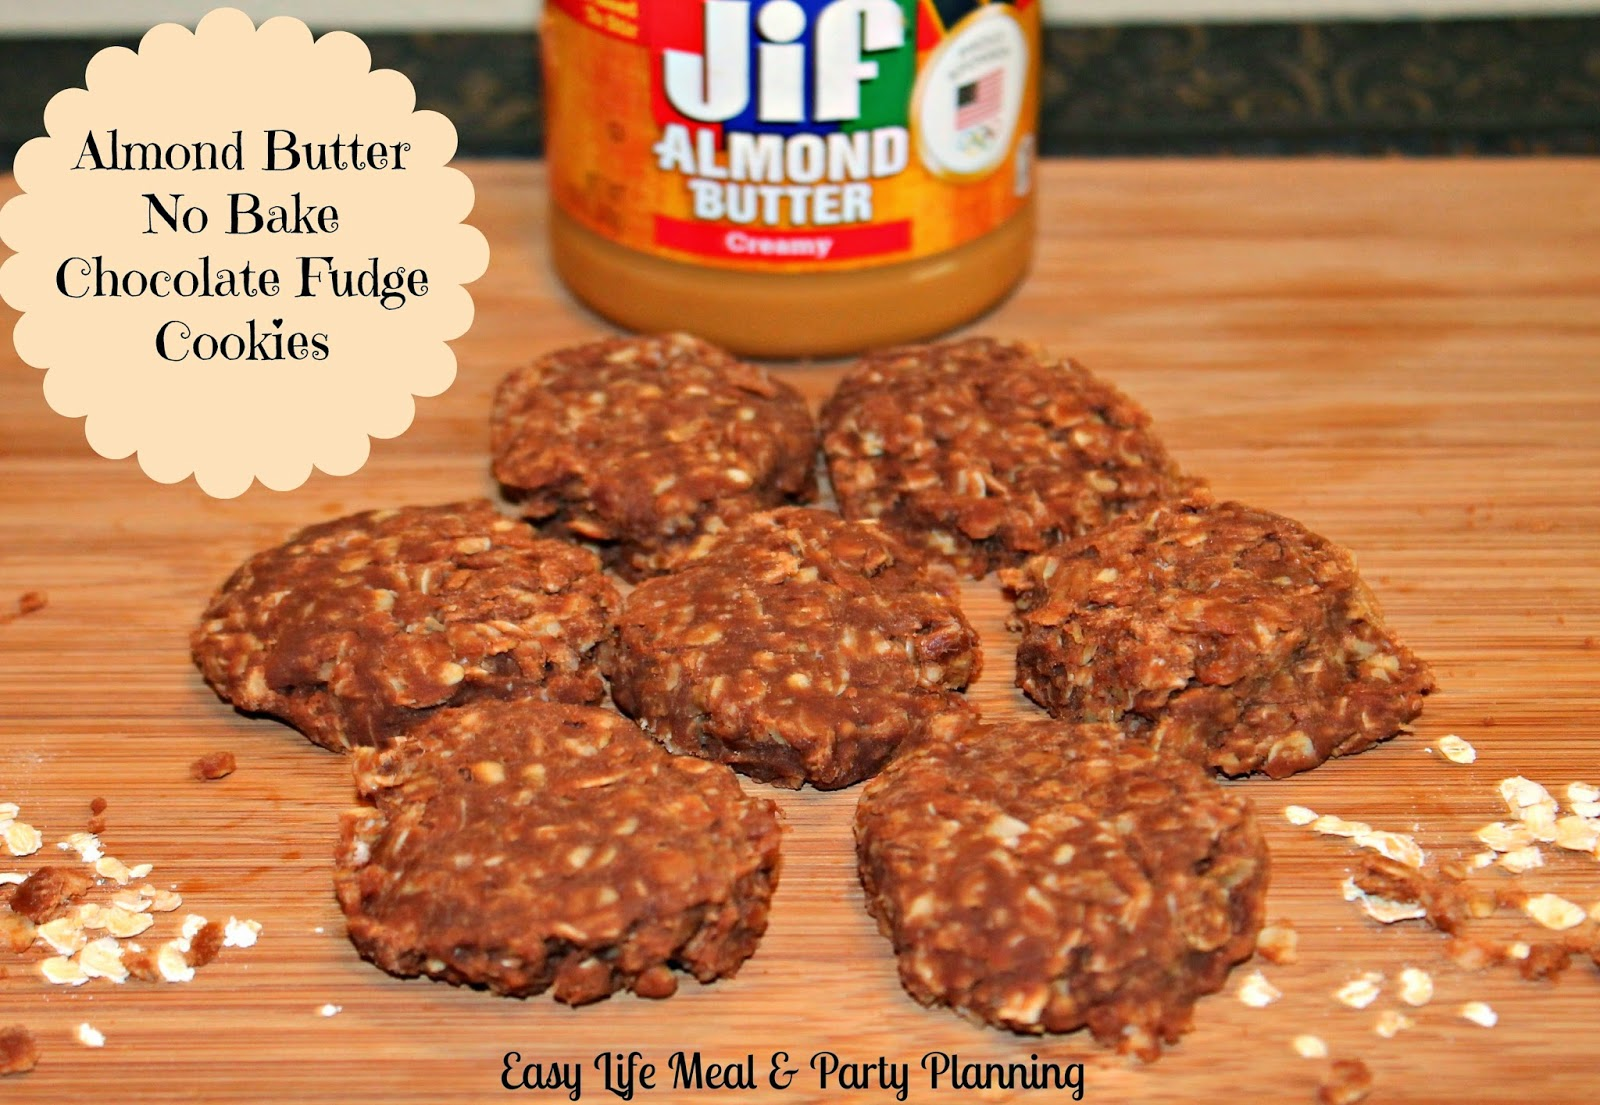 Almond Butter No-Bake Fudge oatmeal Cookie - Easy Life Meal & Party Planning